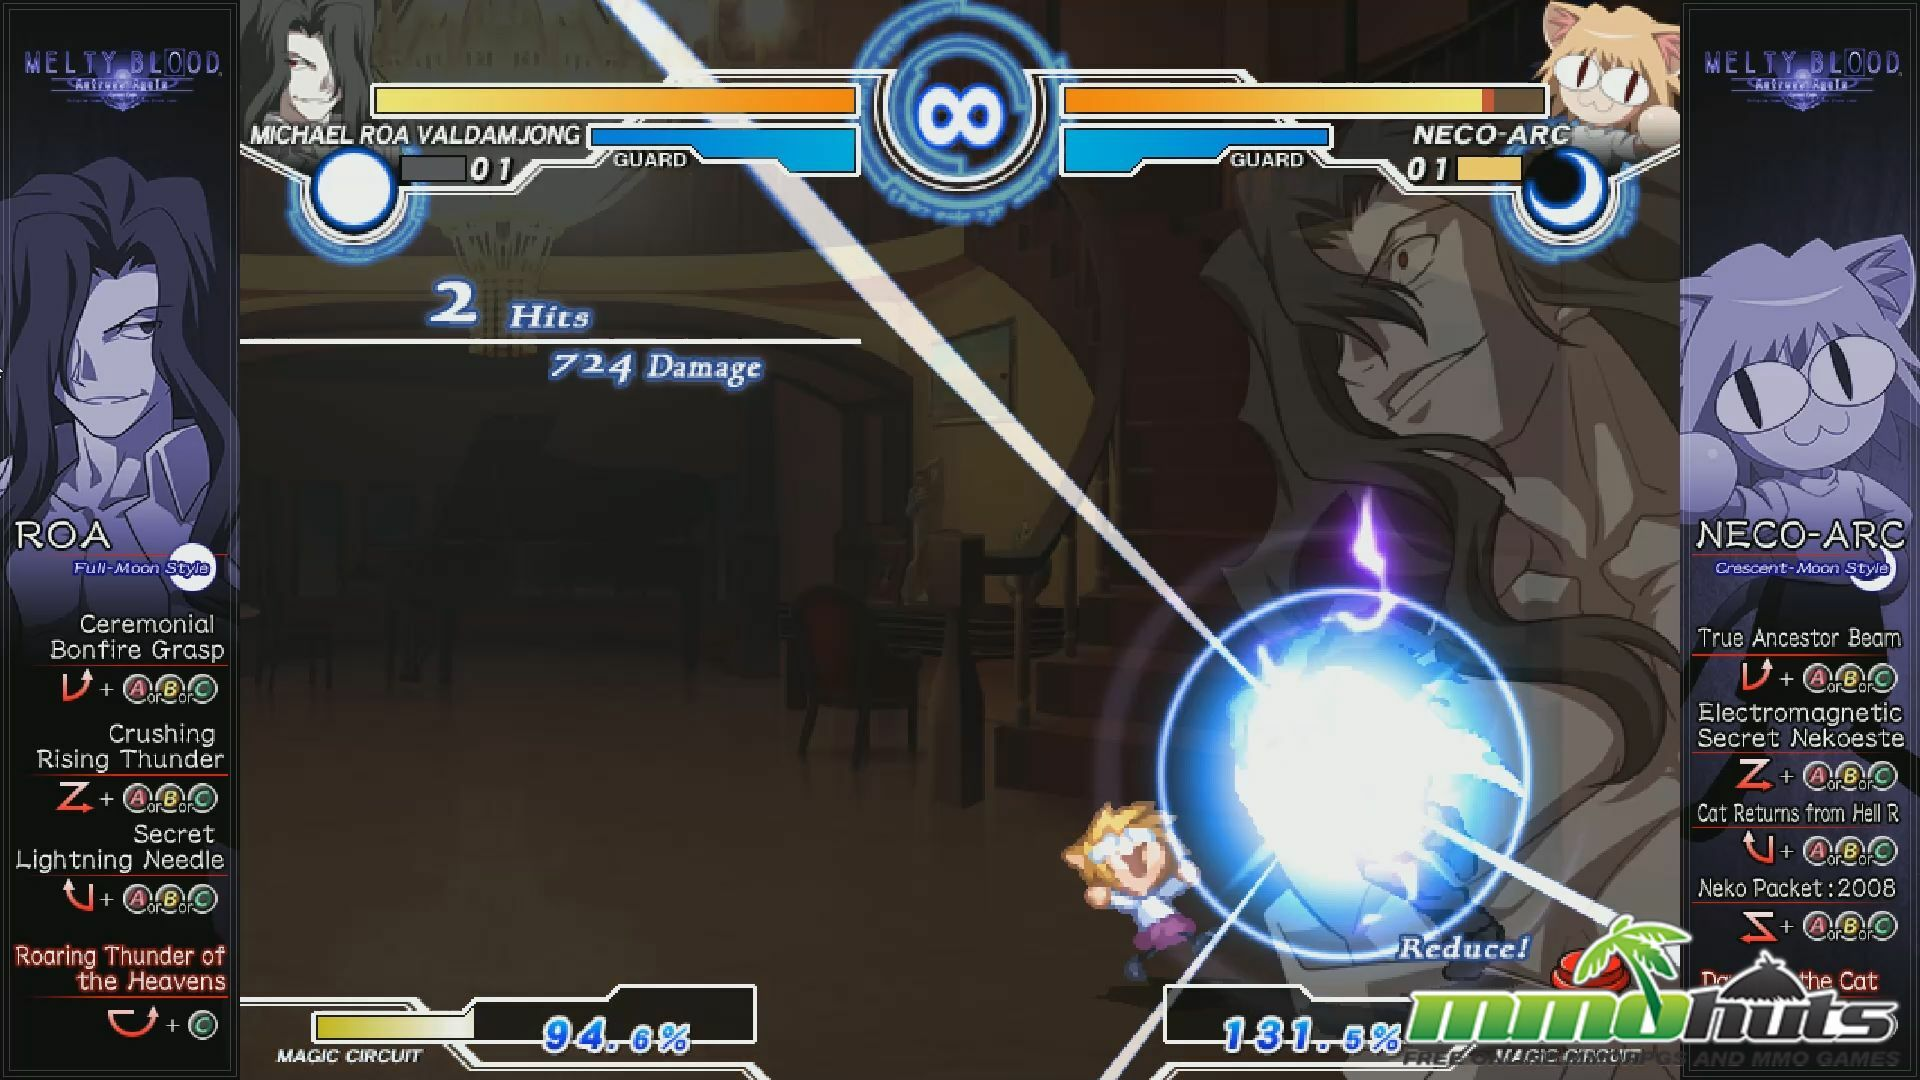 Melty Blood Actress Again Current Code PC Localized Review